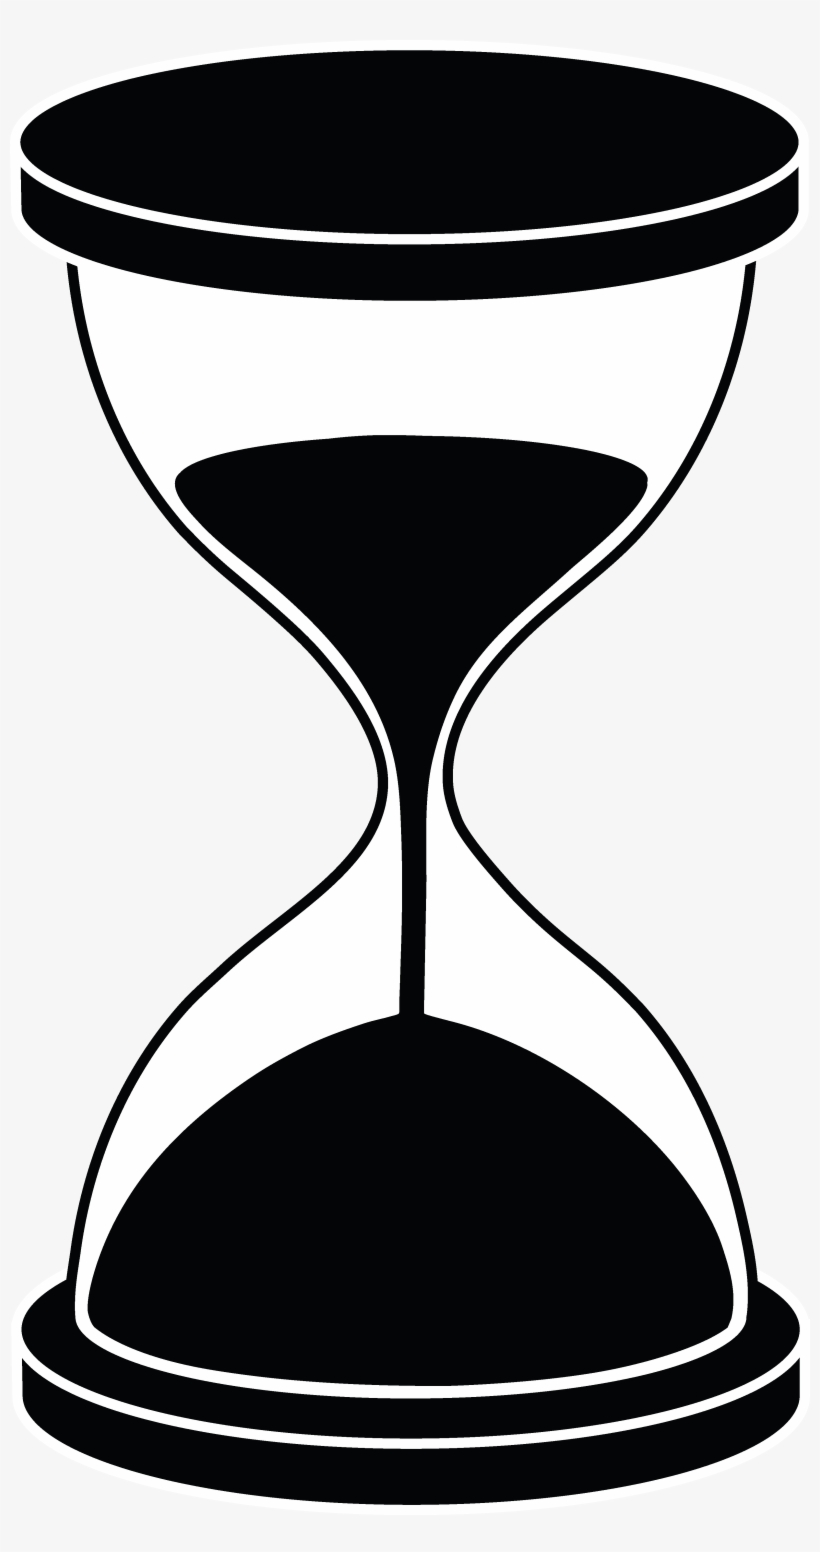 Hourglass clipart sand watch. Clock png image